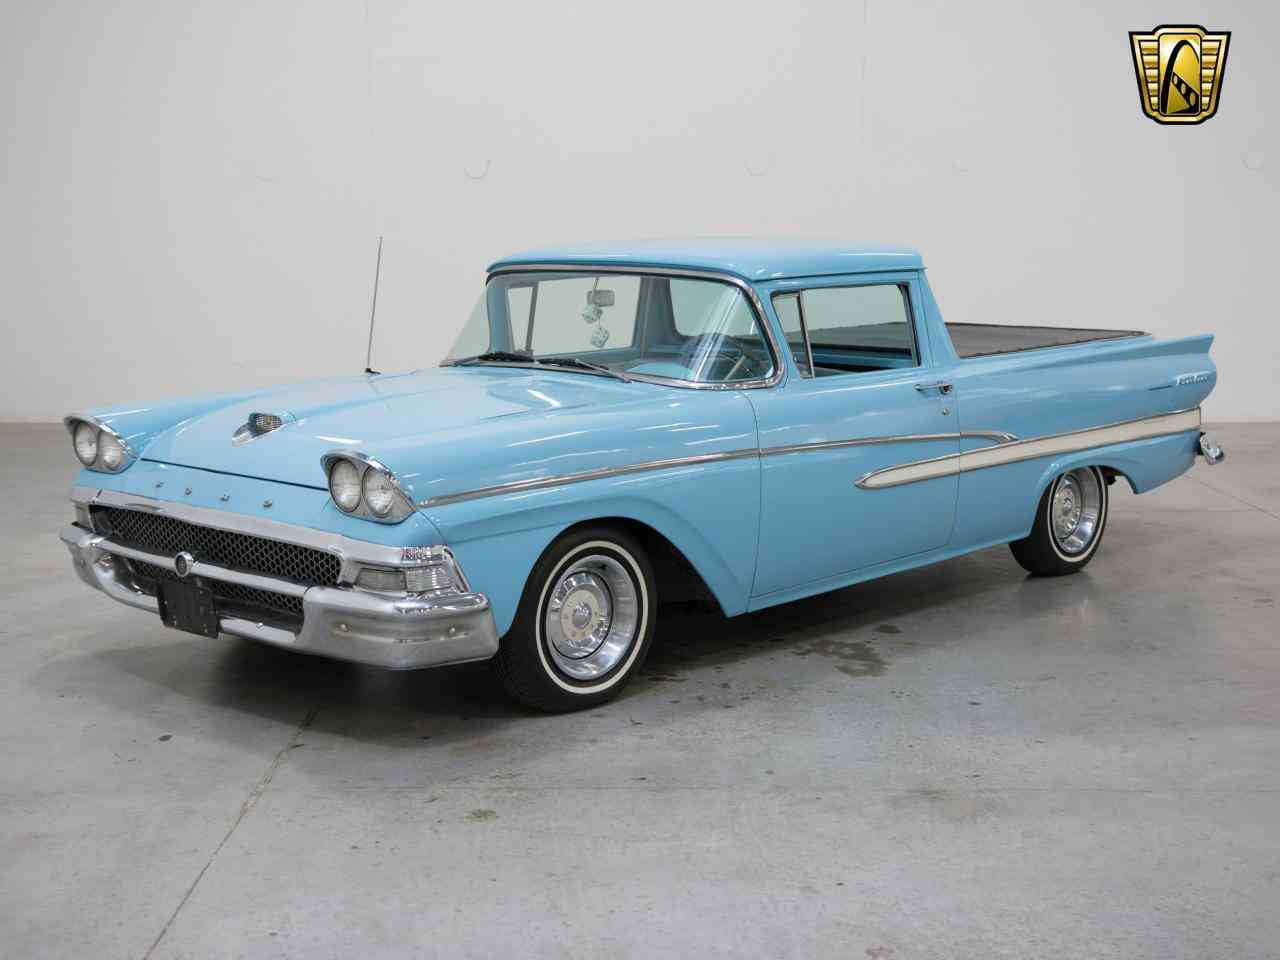 Large Picture of Classic '58 Ford Ranchero located in Wisconsin - $20,995.00 Offered by Gateway Classic Cars - Milwaukee - KH0V